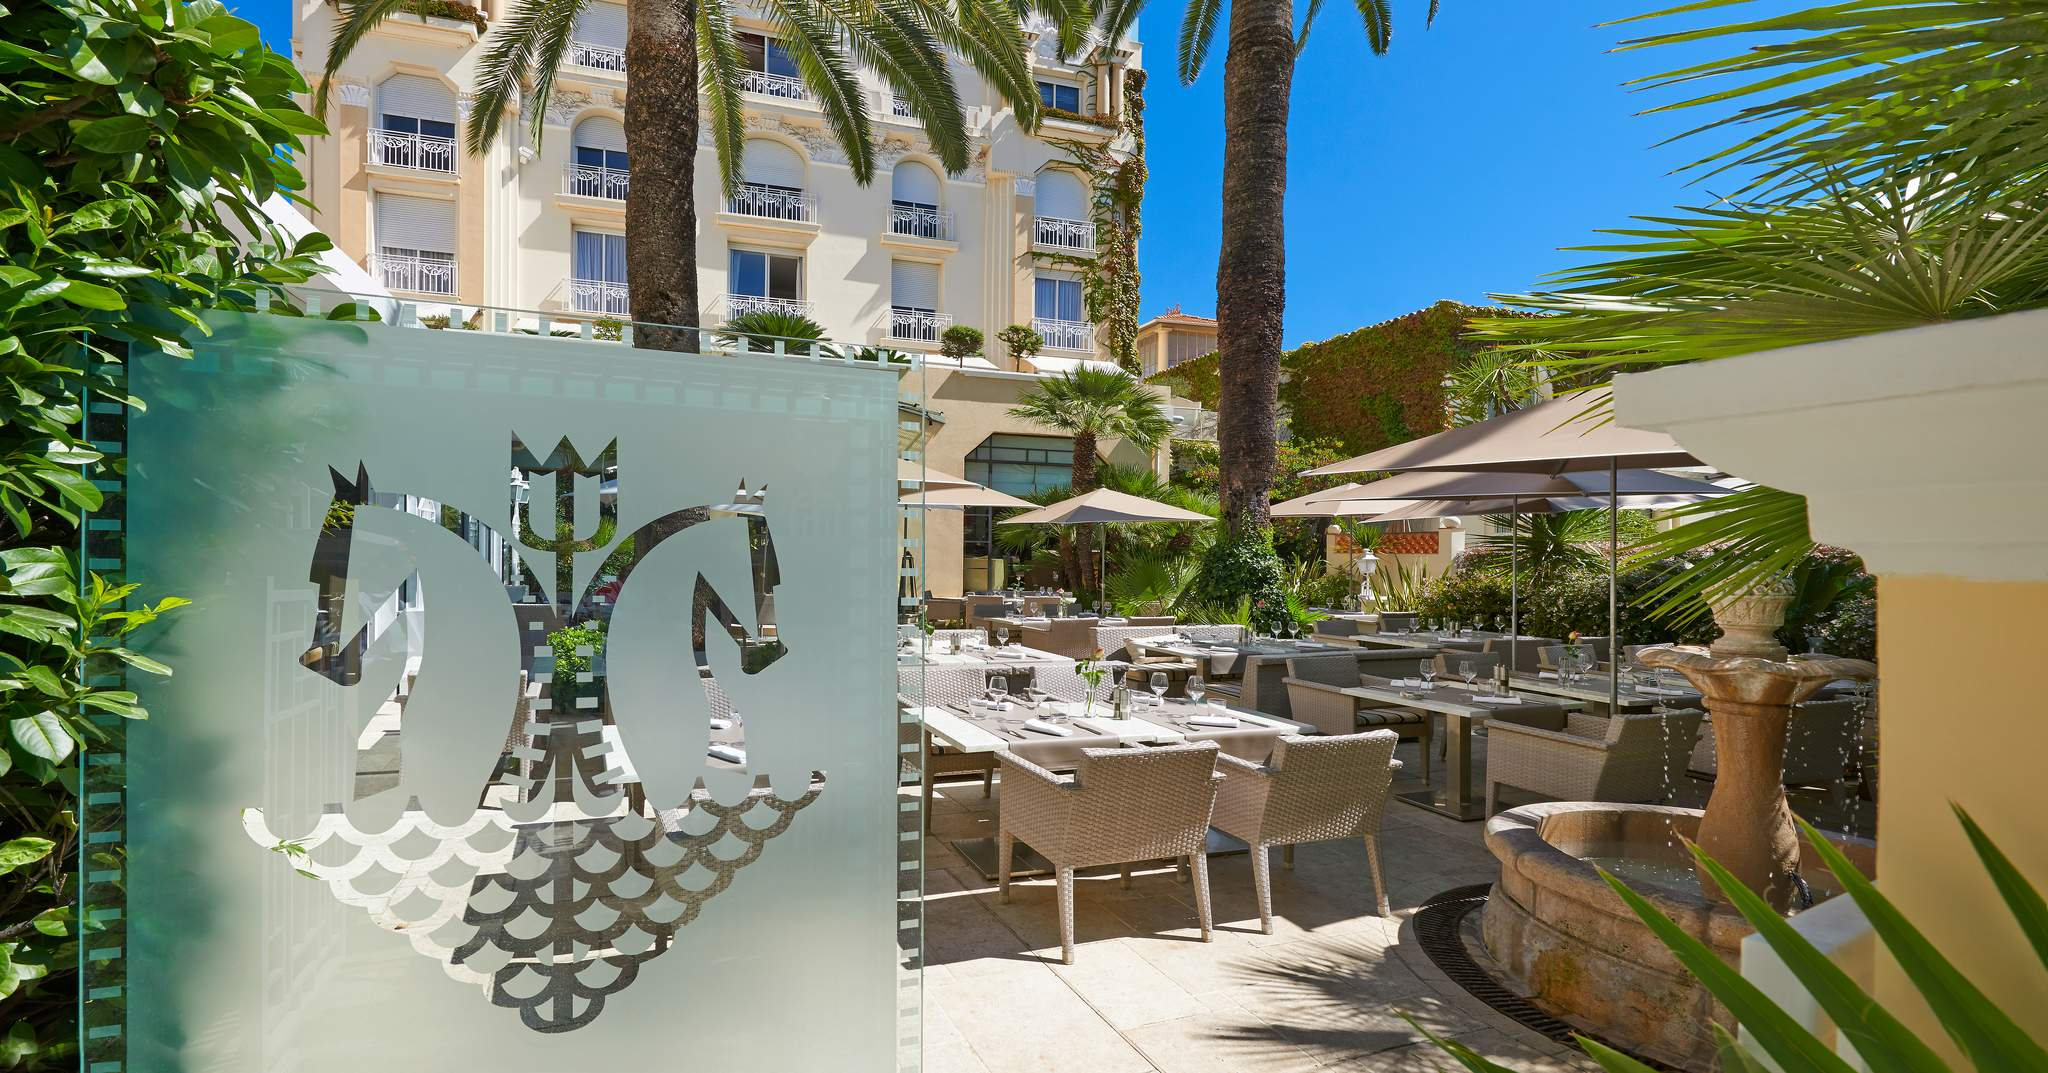 Hotel juana in antibes france for Boutique hotel juan les pins